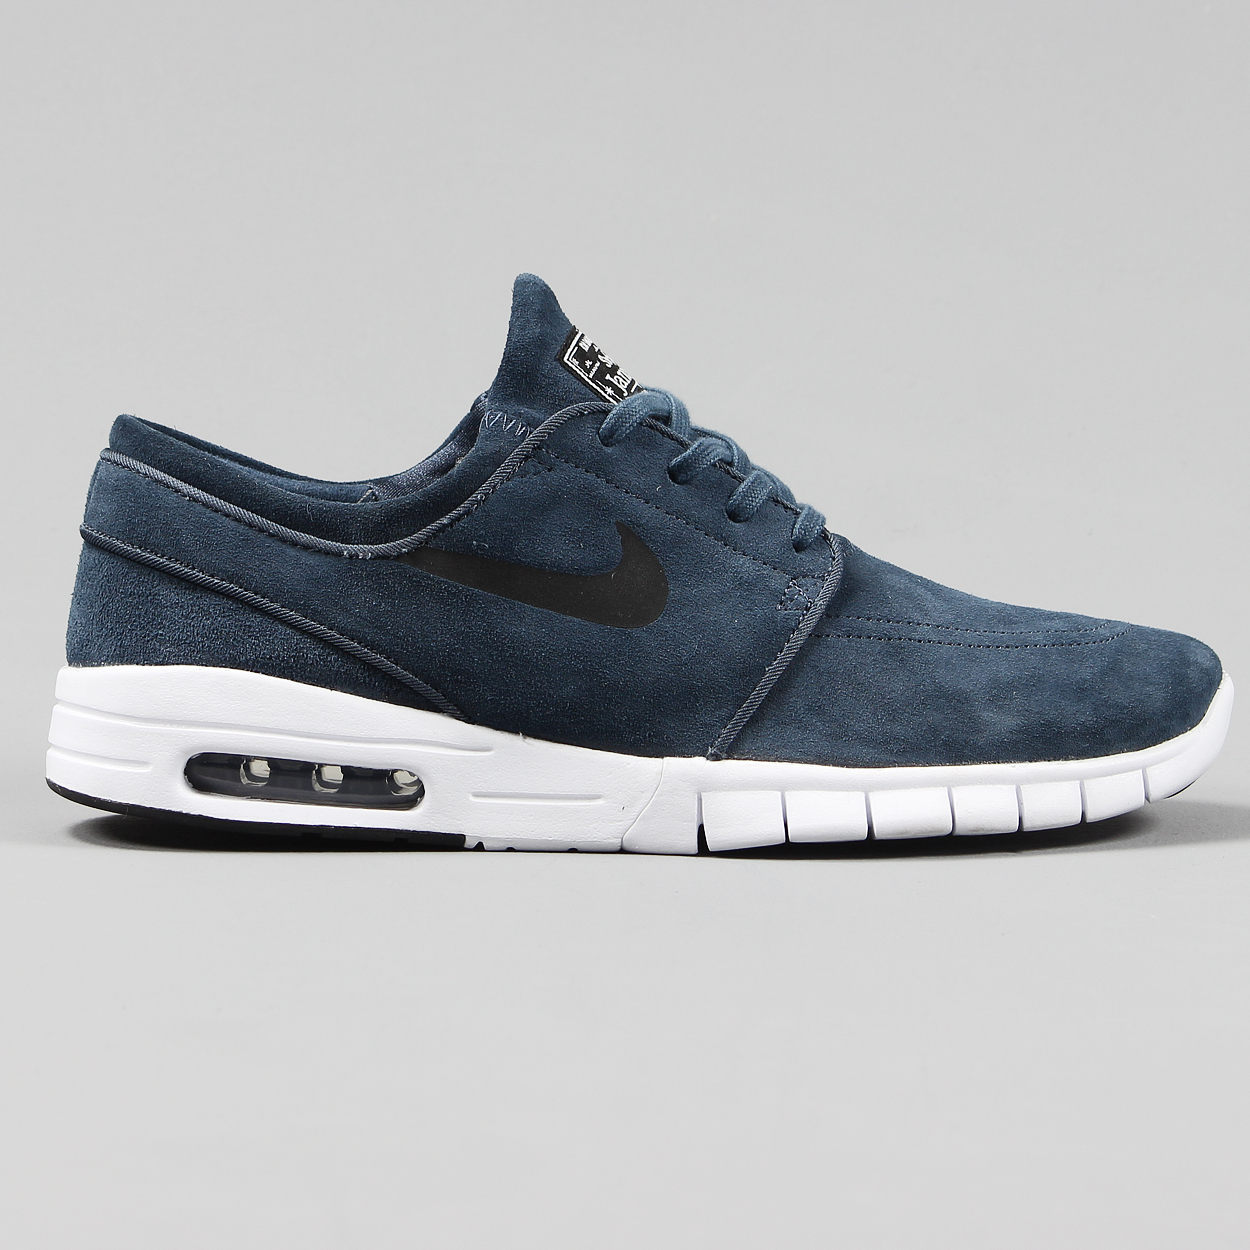 Nike SB Stefan Janoski Max L Shoes Squadron Blue Black White